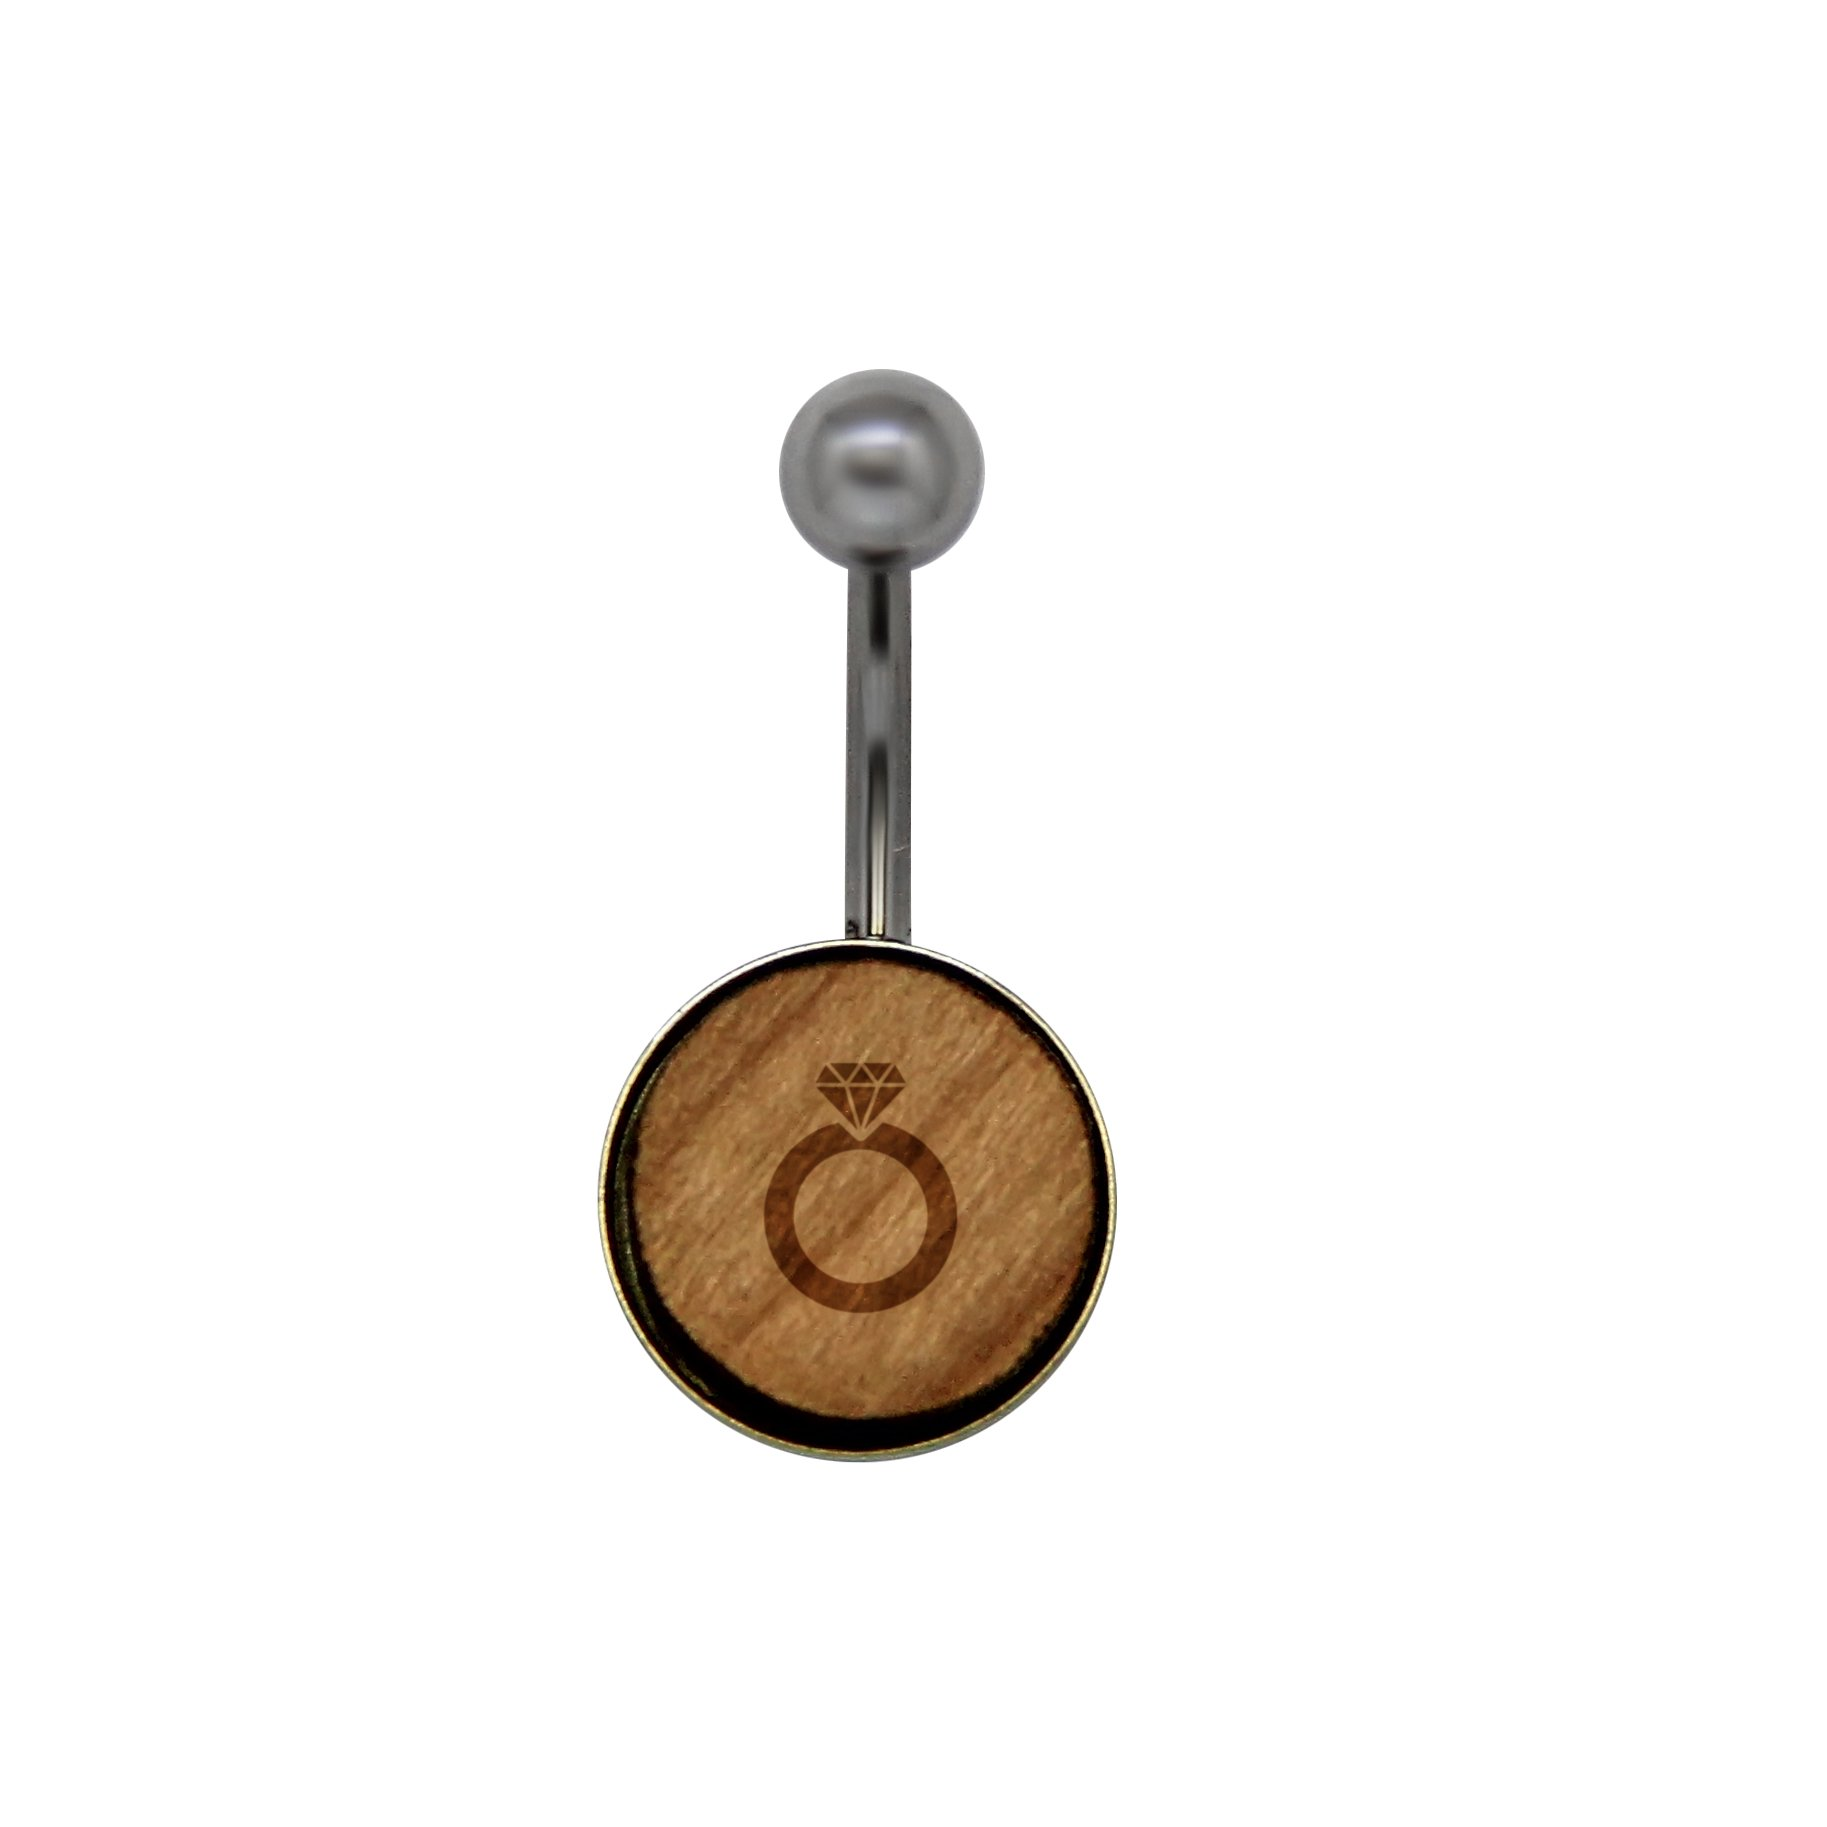 Wedding Ring Surgical Stainless Steel Belly Button Rings - Size 14 Gauge Wooden Navel Ring - Rustic Wood Navel Ring With Laser Engraved Design